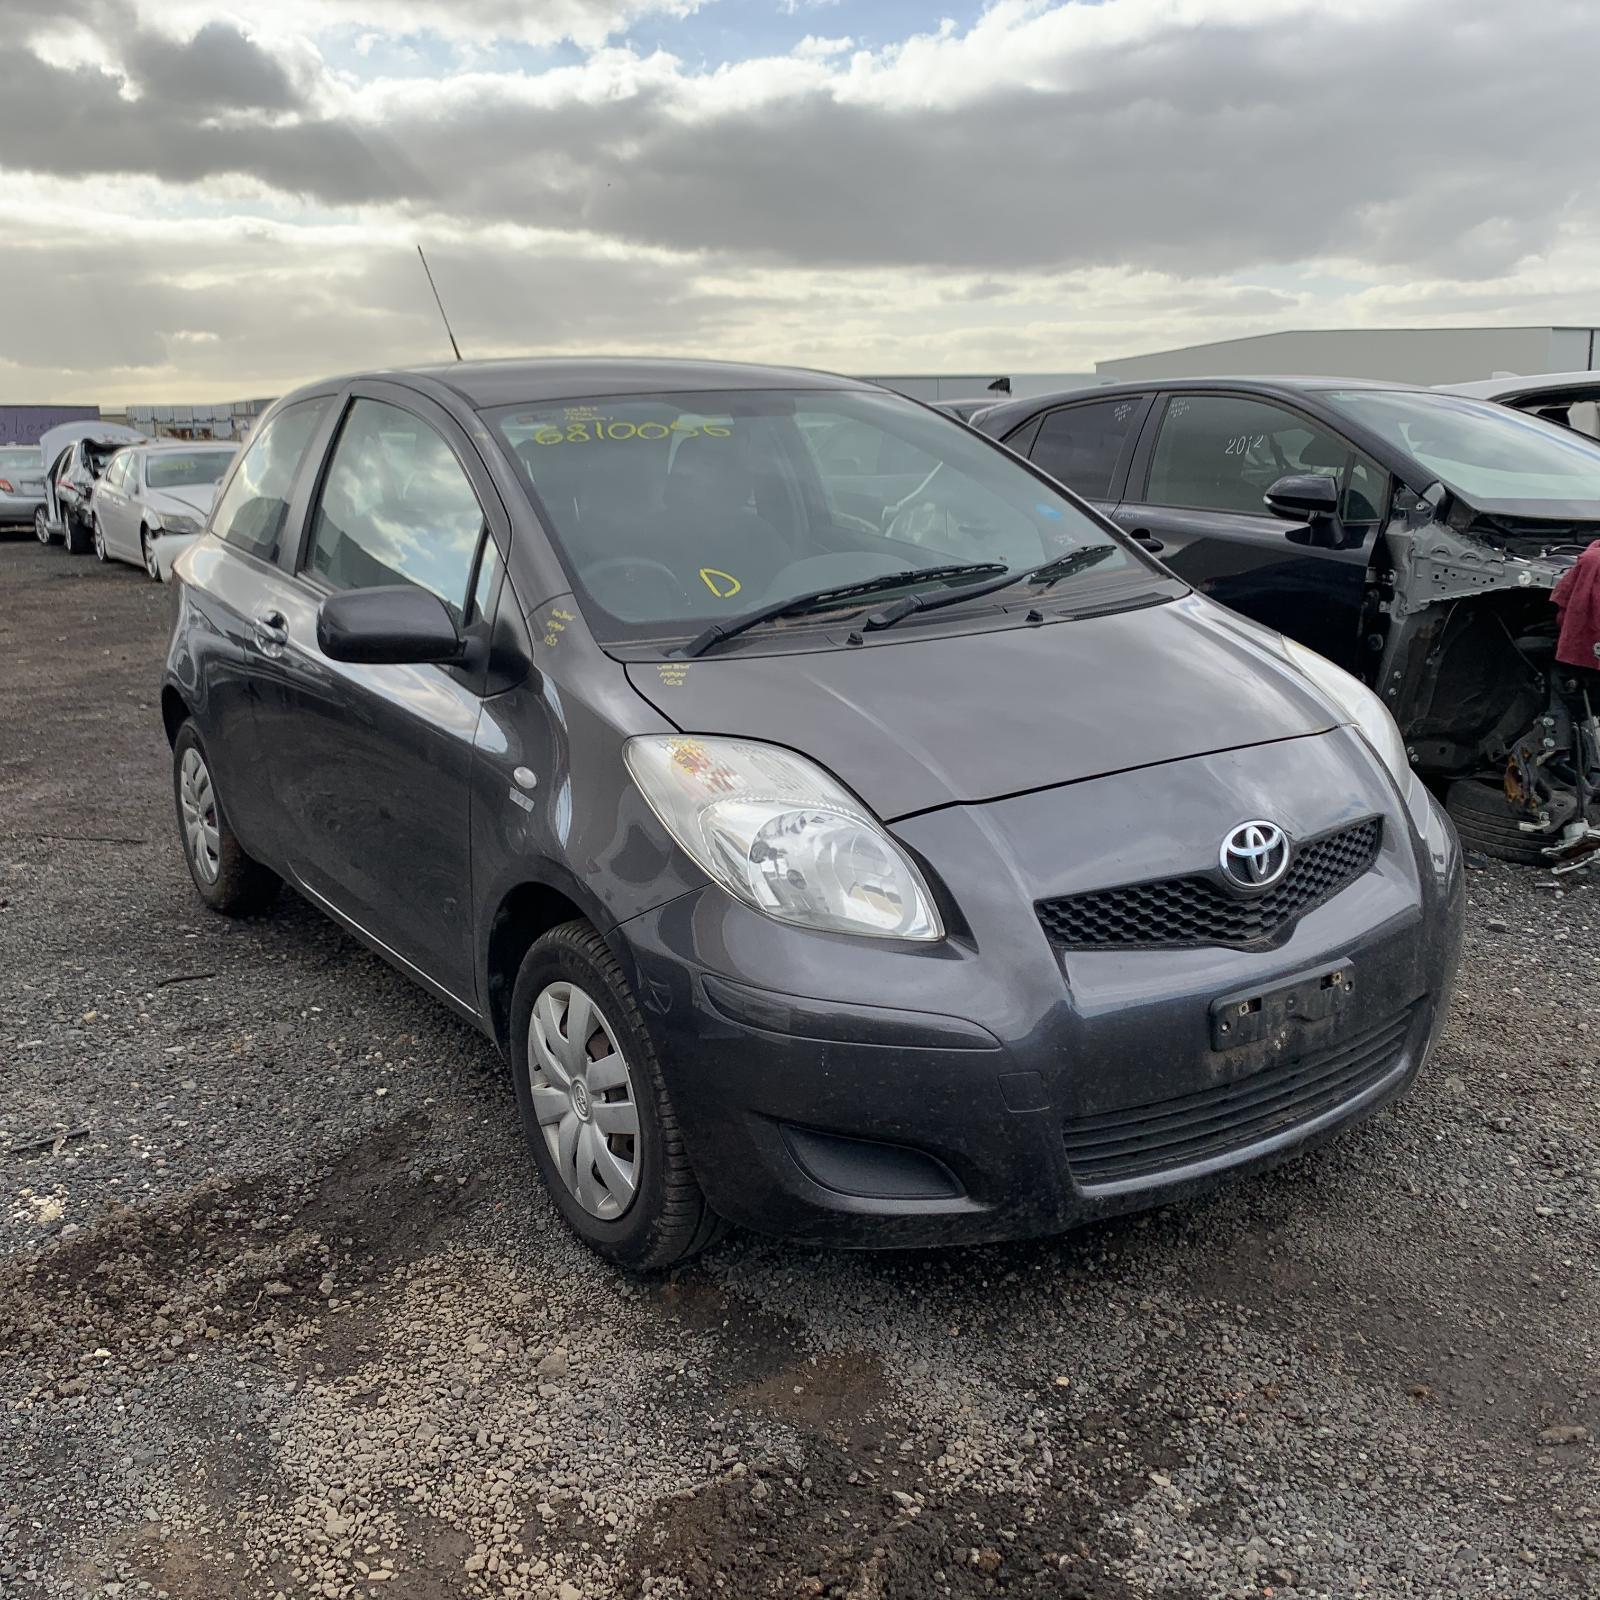 Toyota YARIS NCP90R YR 2NZ-FE 1.3L Engine Automatic FWD Transmission 10/05 - 10/11